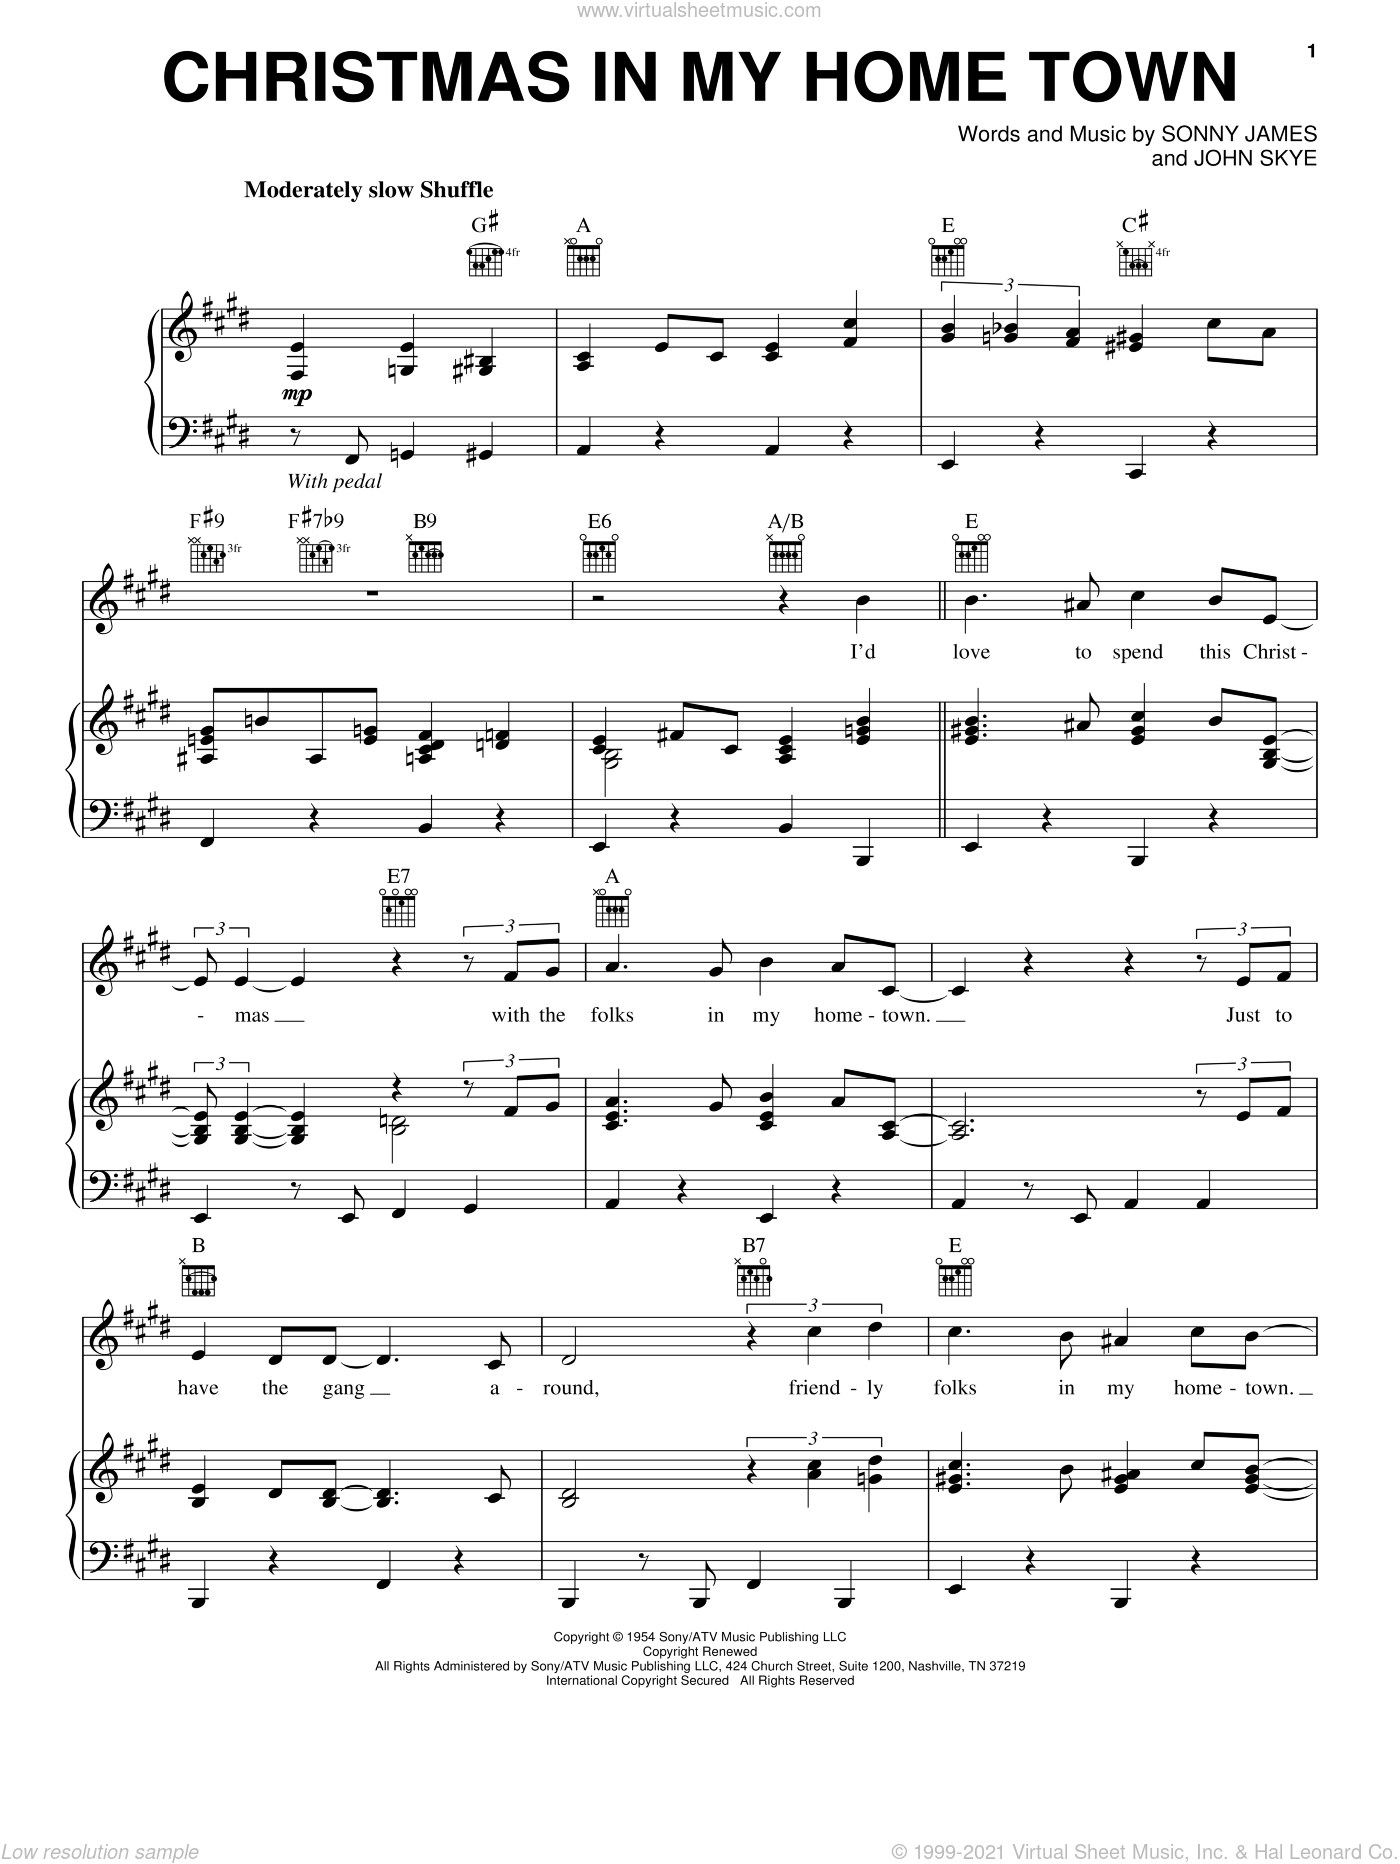 Christmas In My Home Town sheet music for voice, piano or guitar by Eric Clapton, John Skye and Sonny James, intermediate skill level